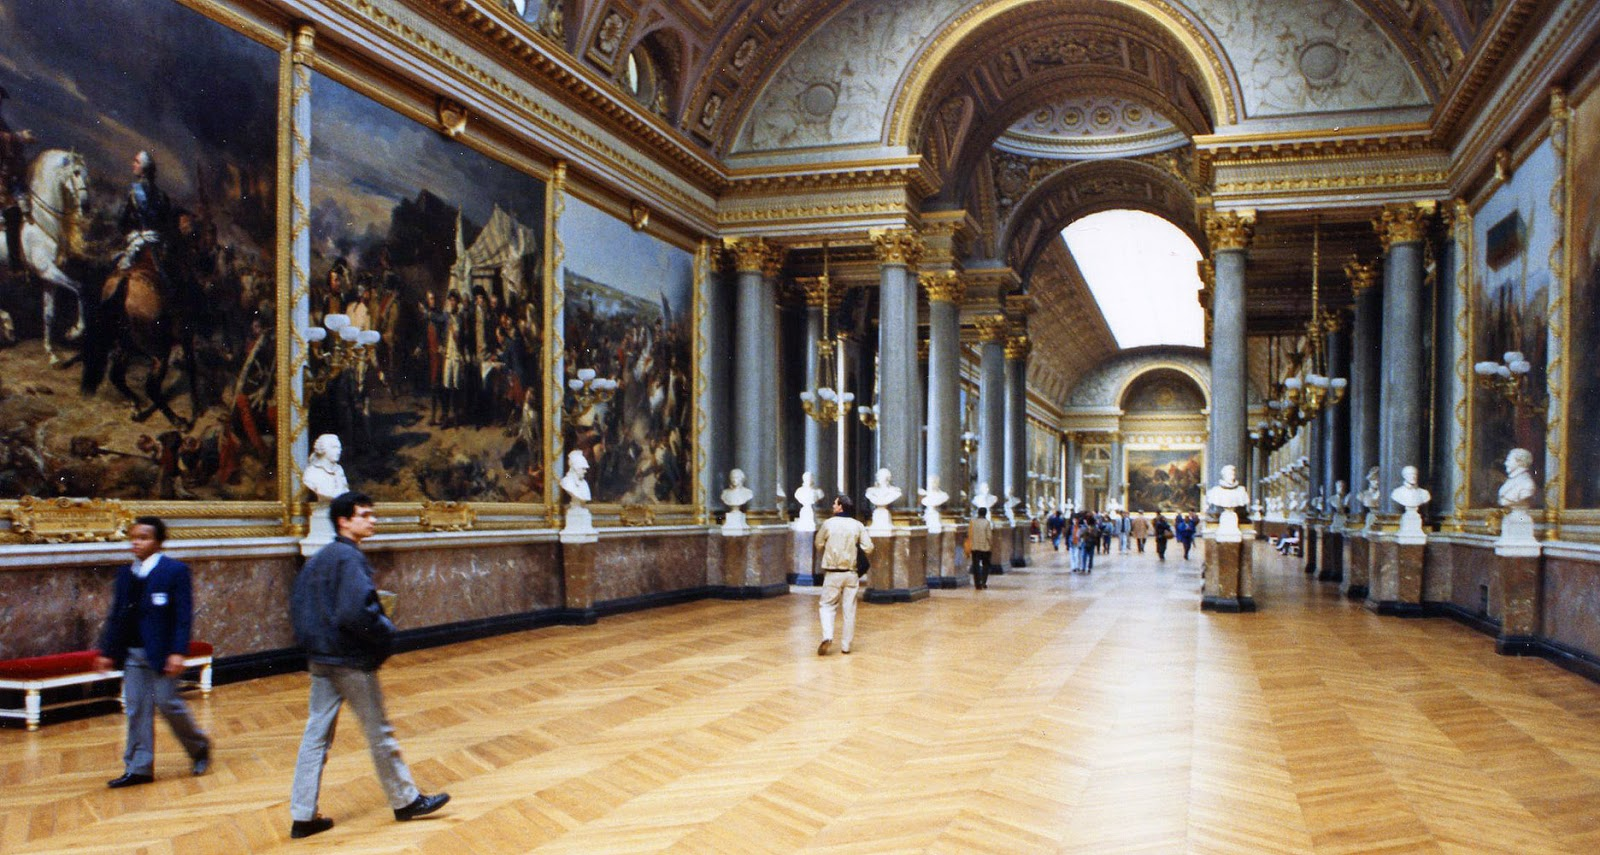 World visits louvre museum central landmark of france and for Le louvre interieur